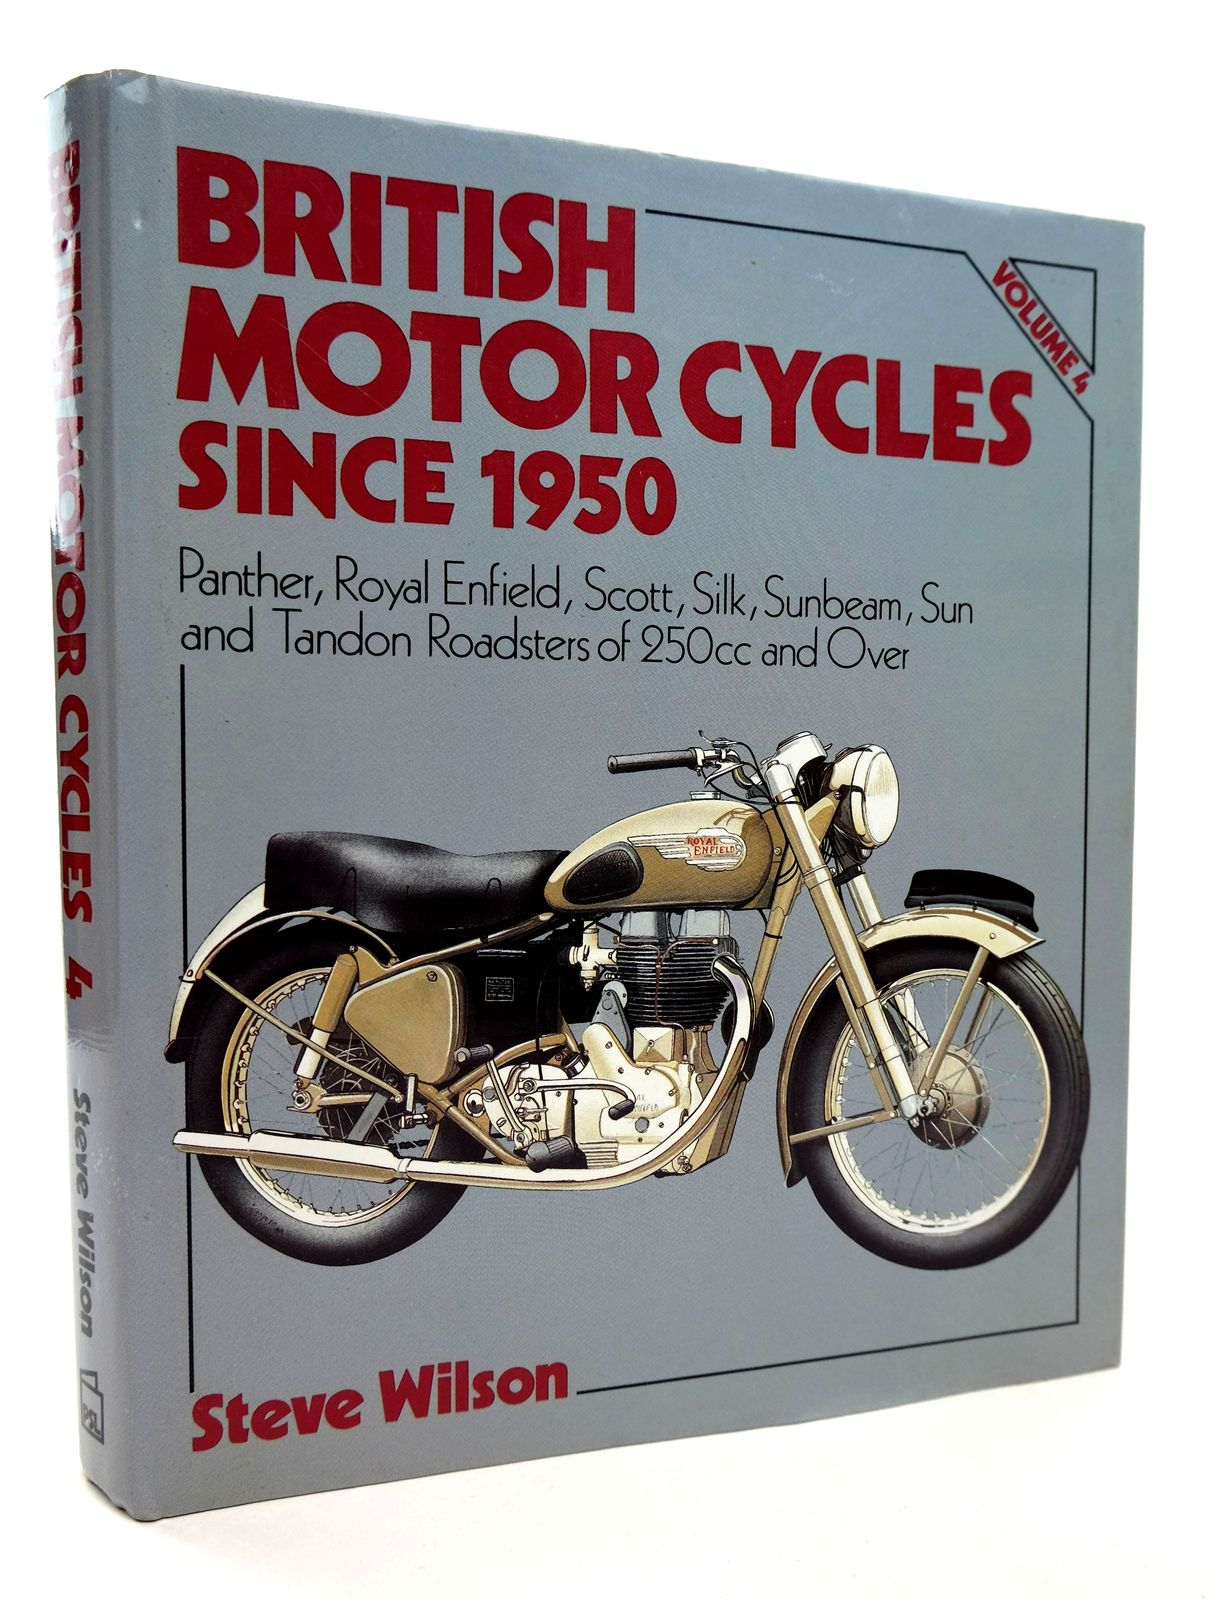 Photo of BRITISH MOTOR CYCLES SINCE 1950 VOLUME 4 written by Wilson, Steve published by Patrick Stephens (STOCK CODE: 1818805)  for sale by Stella & Rose's Books